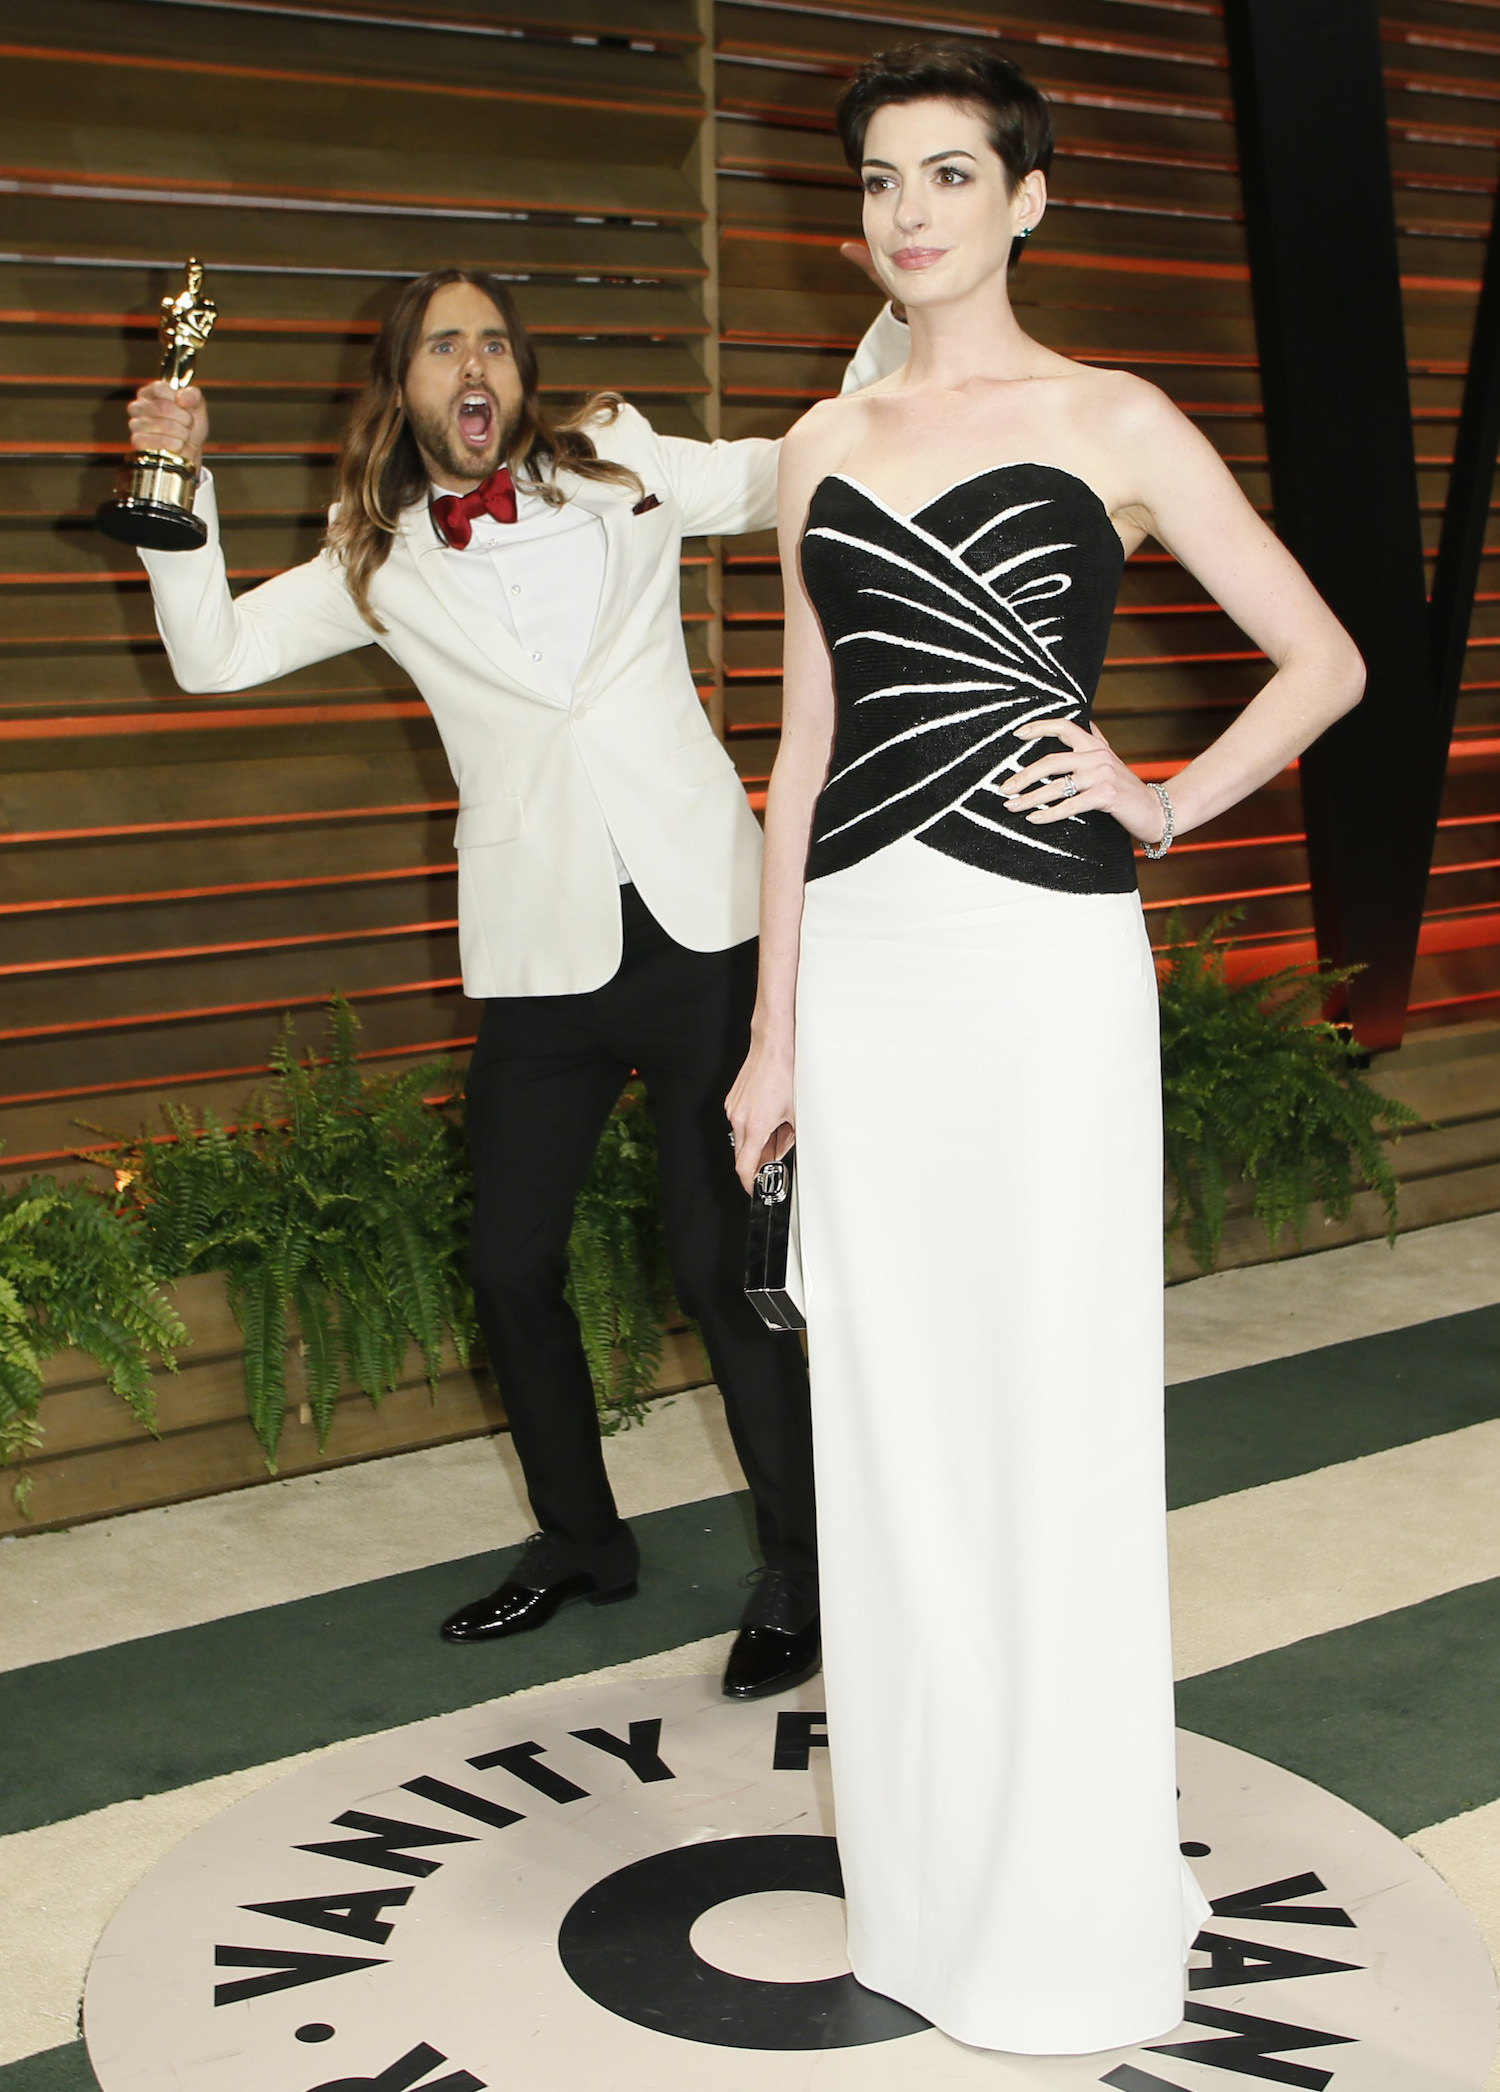 Leto jokes around as actress Anne Hathaway poses as they arrive at the 2014 Vanity Fair Oscars Party in West Hollywood